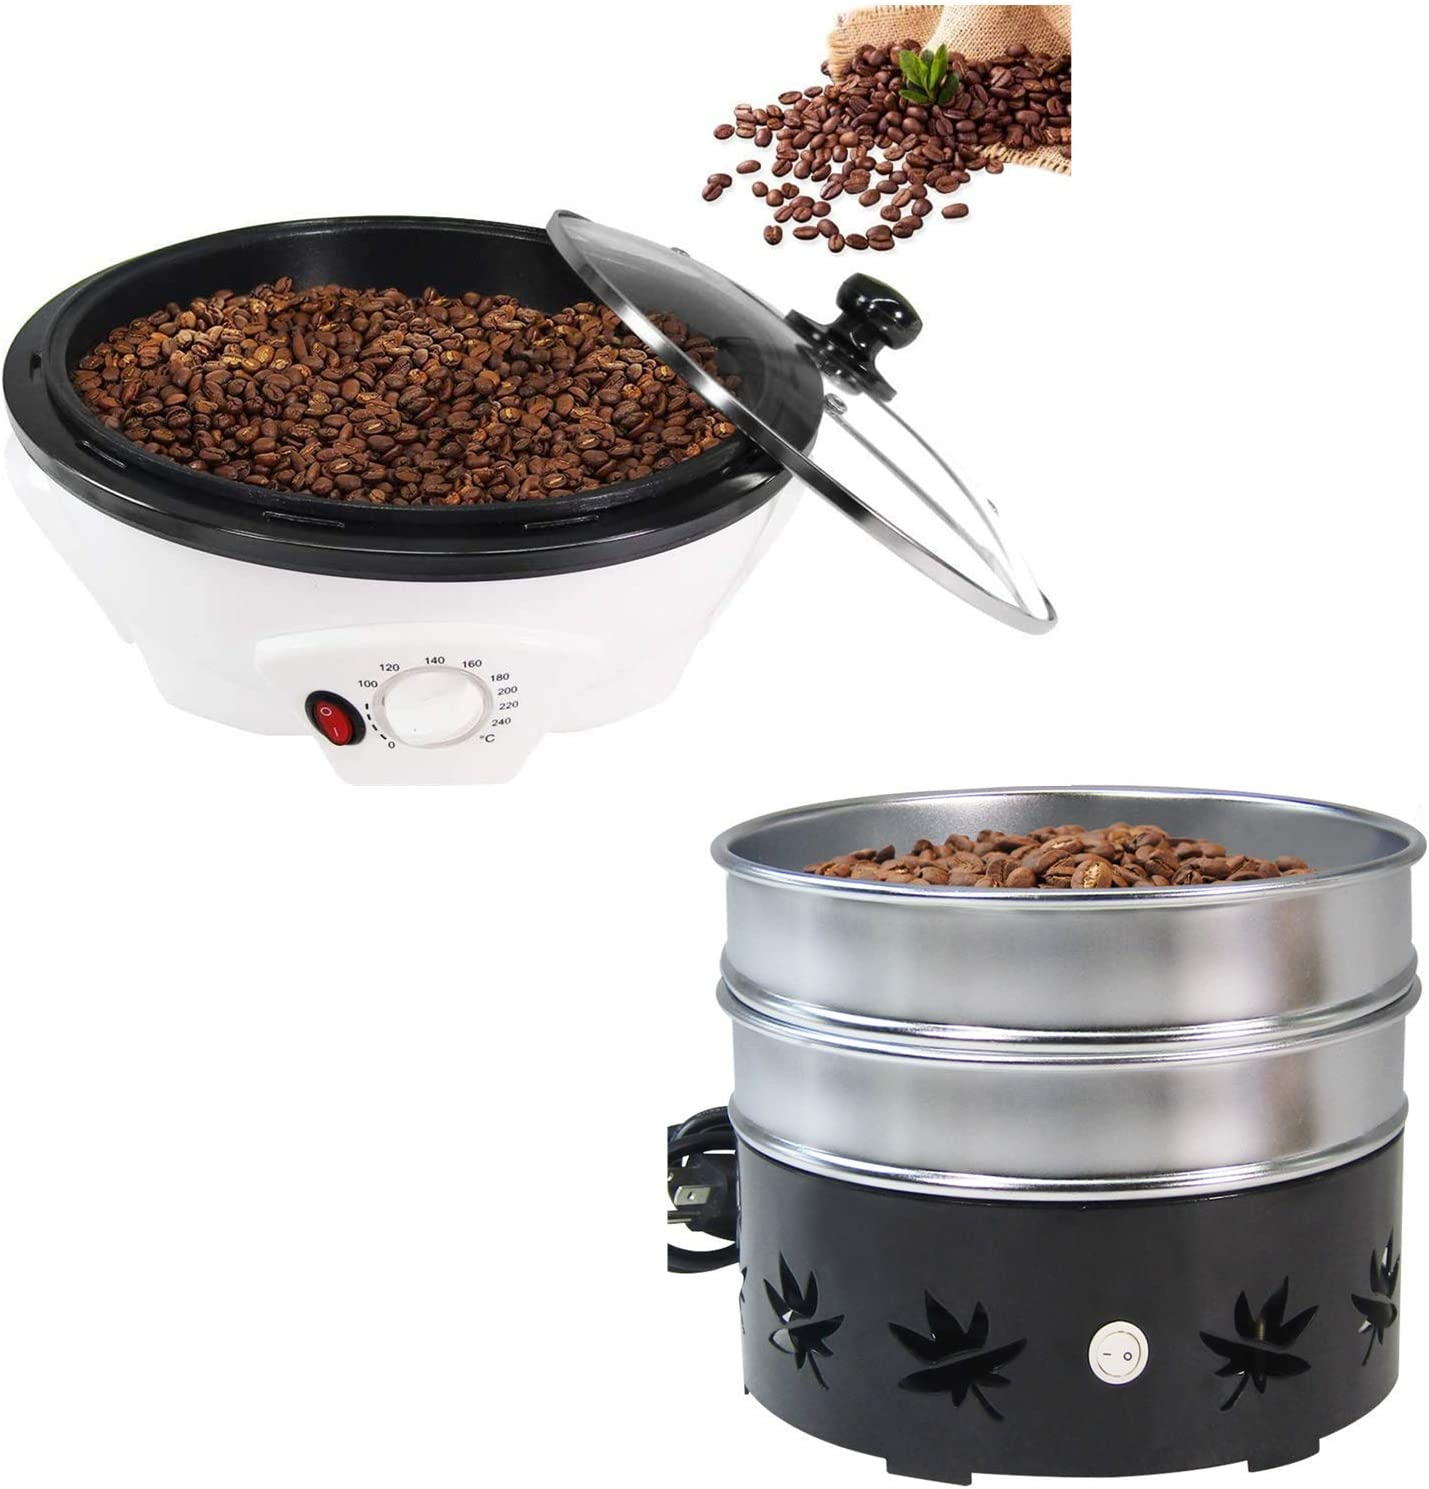 Coffee Roaster for Home Use & 1.1lb Home Coffee Bean Cooler No scattered Chaff